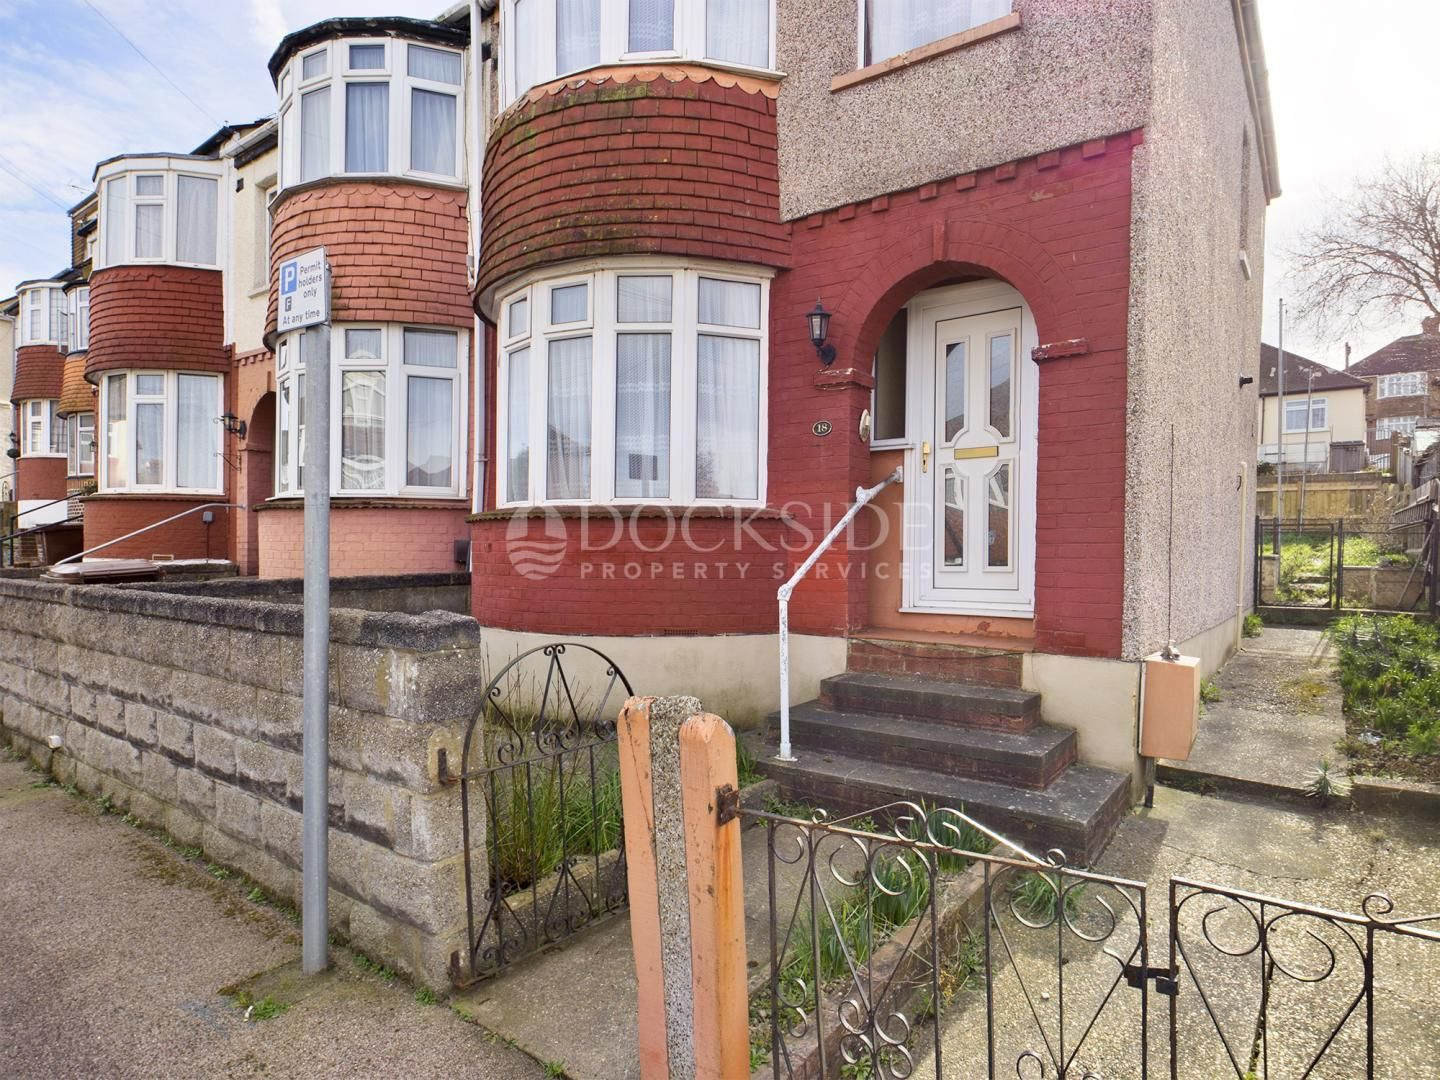 3 bed house for sale in Shottenden Road, ME7